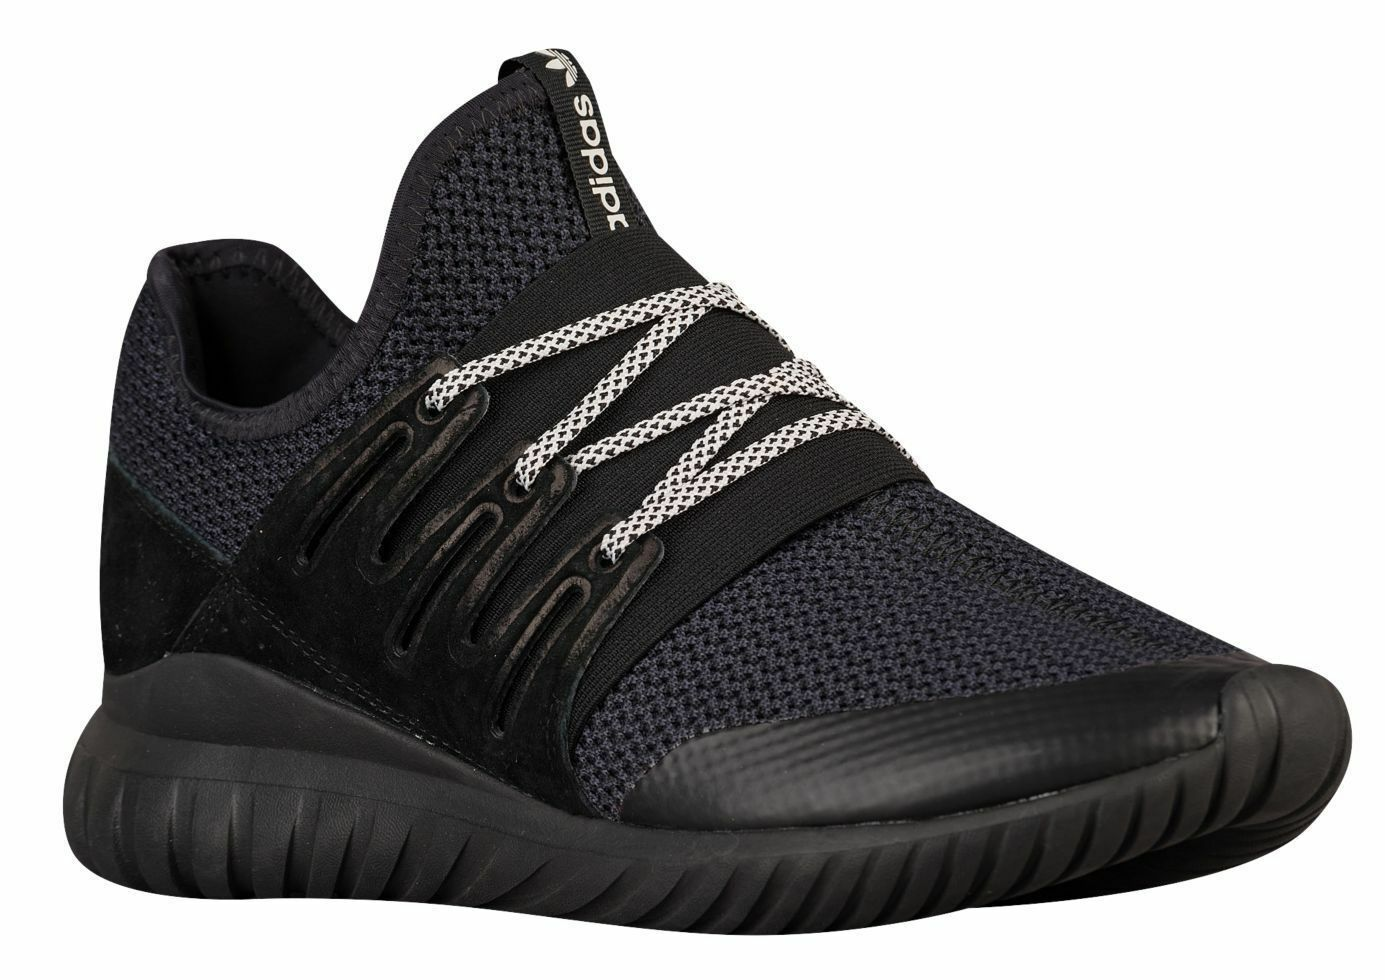 adidas Originals TUBULAR RADIAL Black Vintage White shoe boost S76719 8.5